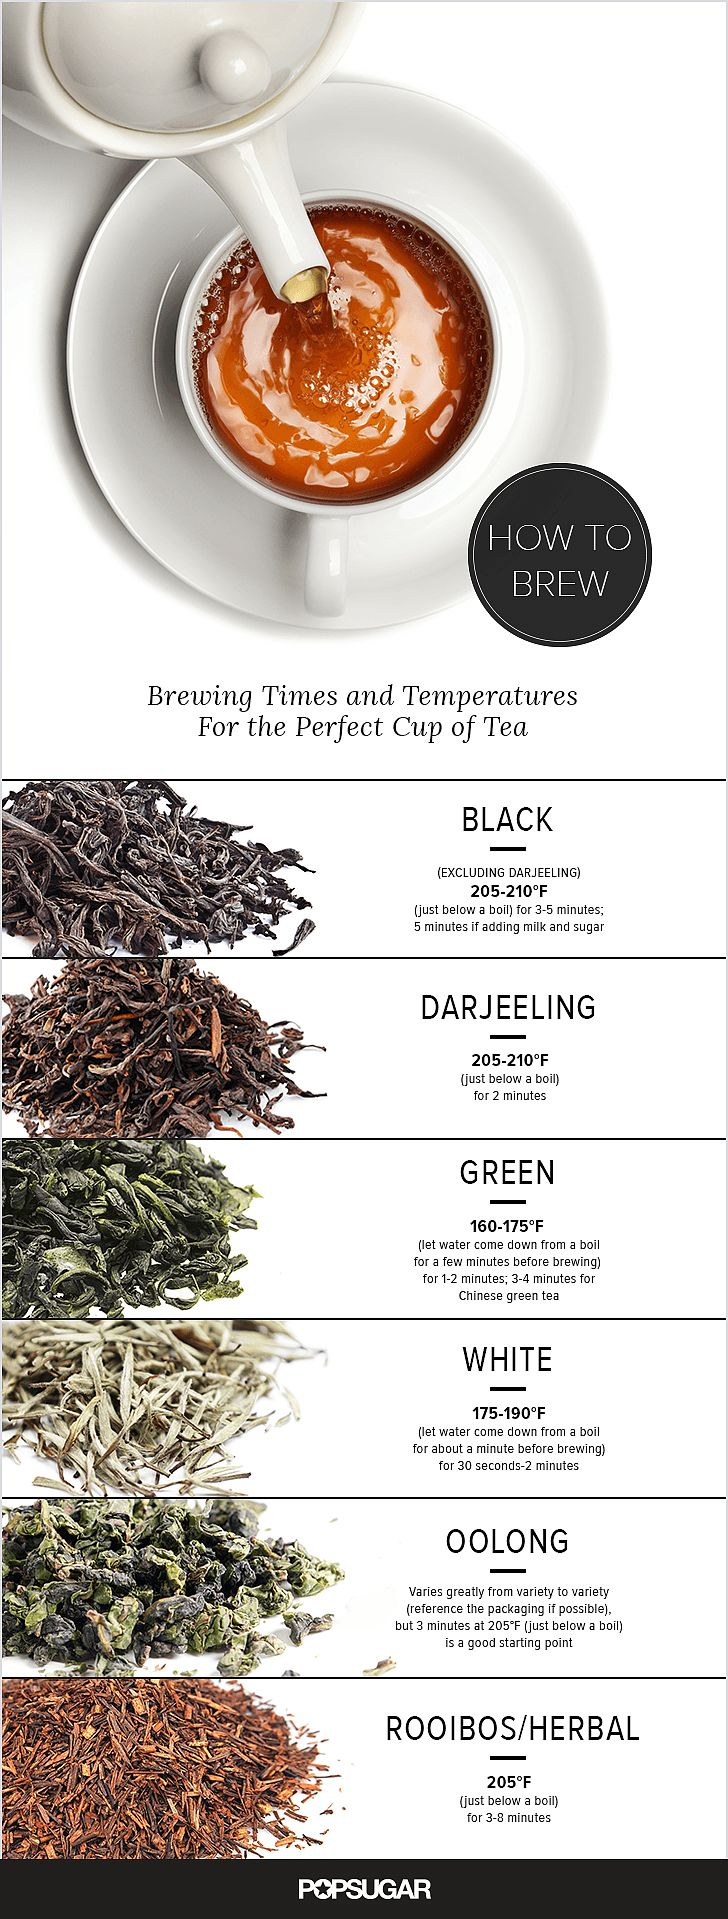 Want to reference it next time you're brewing a pot of tea? Print it out and post it on your refrigerator so you'll never have to look it up again (or, just bookmark this page)!